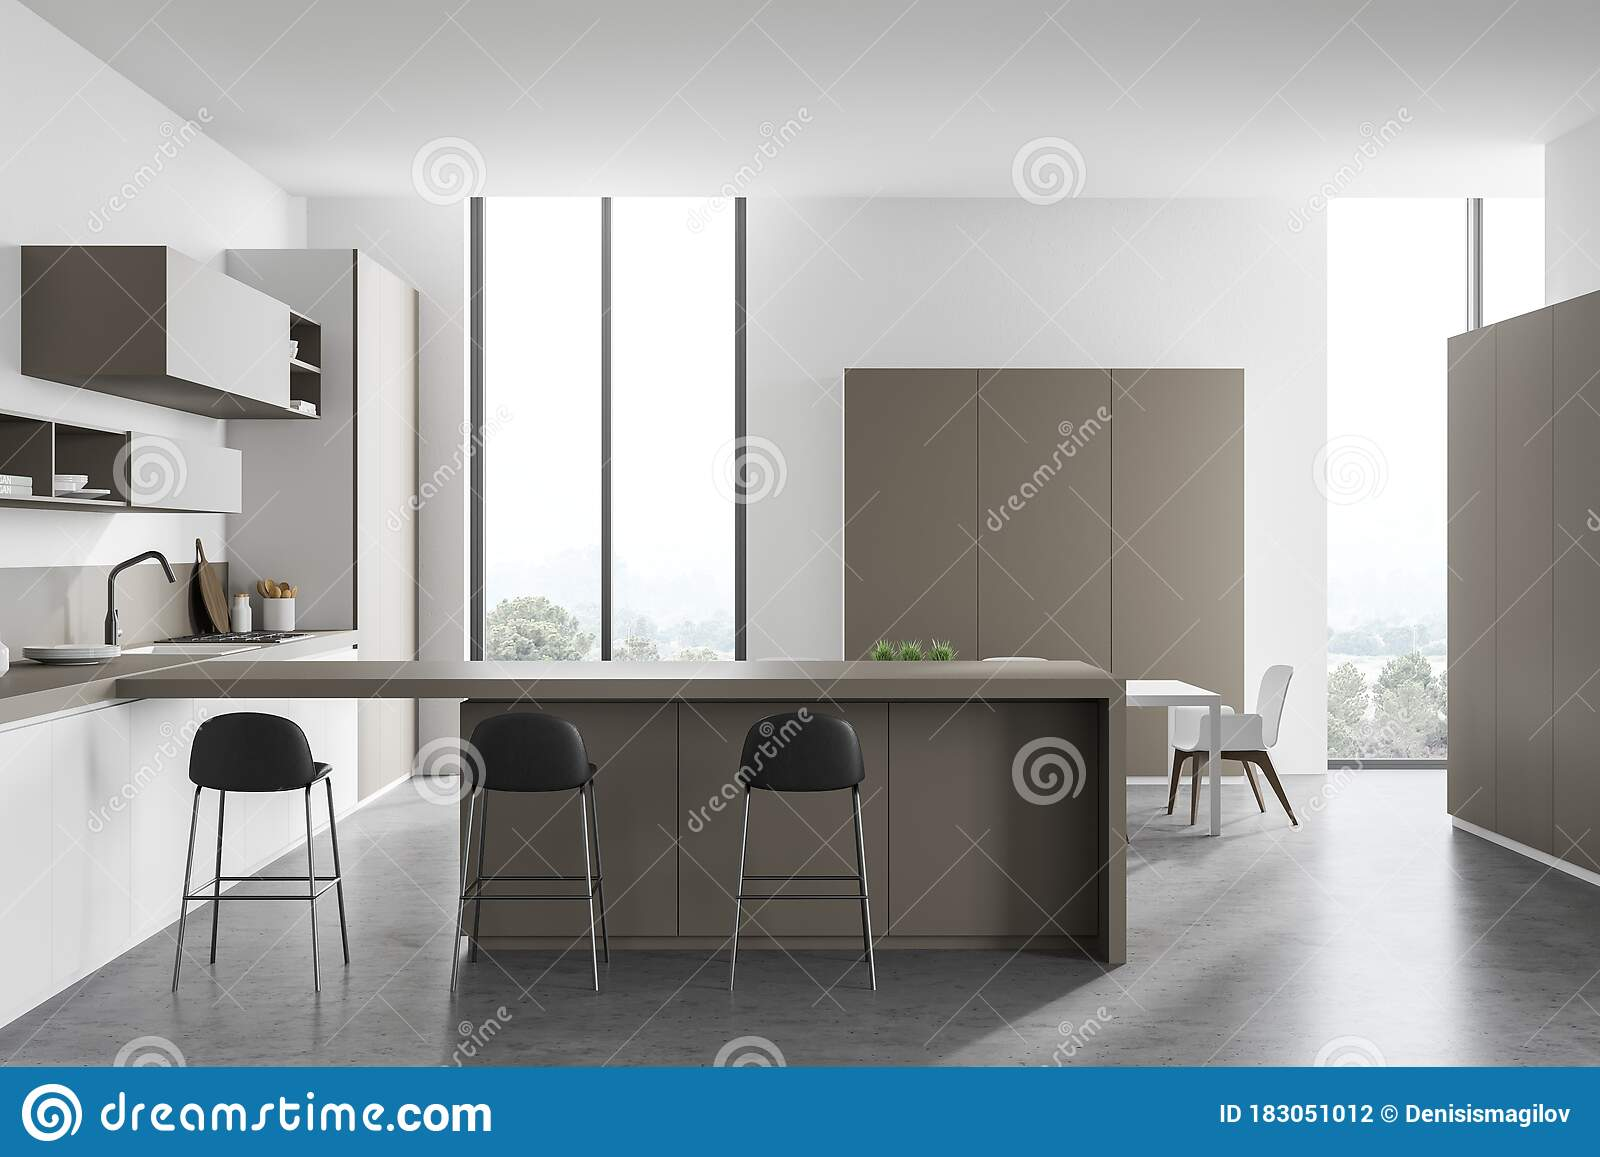 White And Beige Kitchen With Bar And Table Stock Illustration Illustration Of Home Indoors 183051012